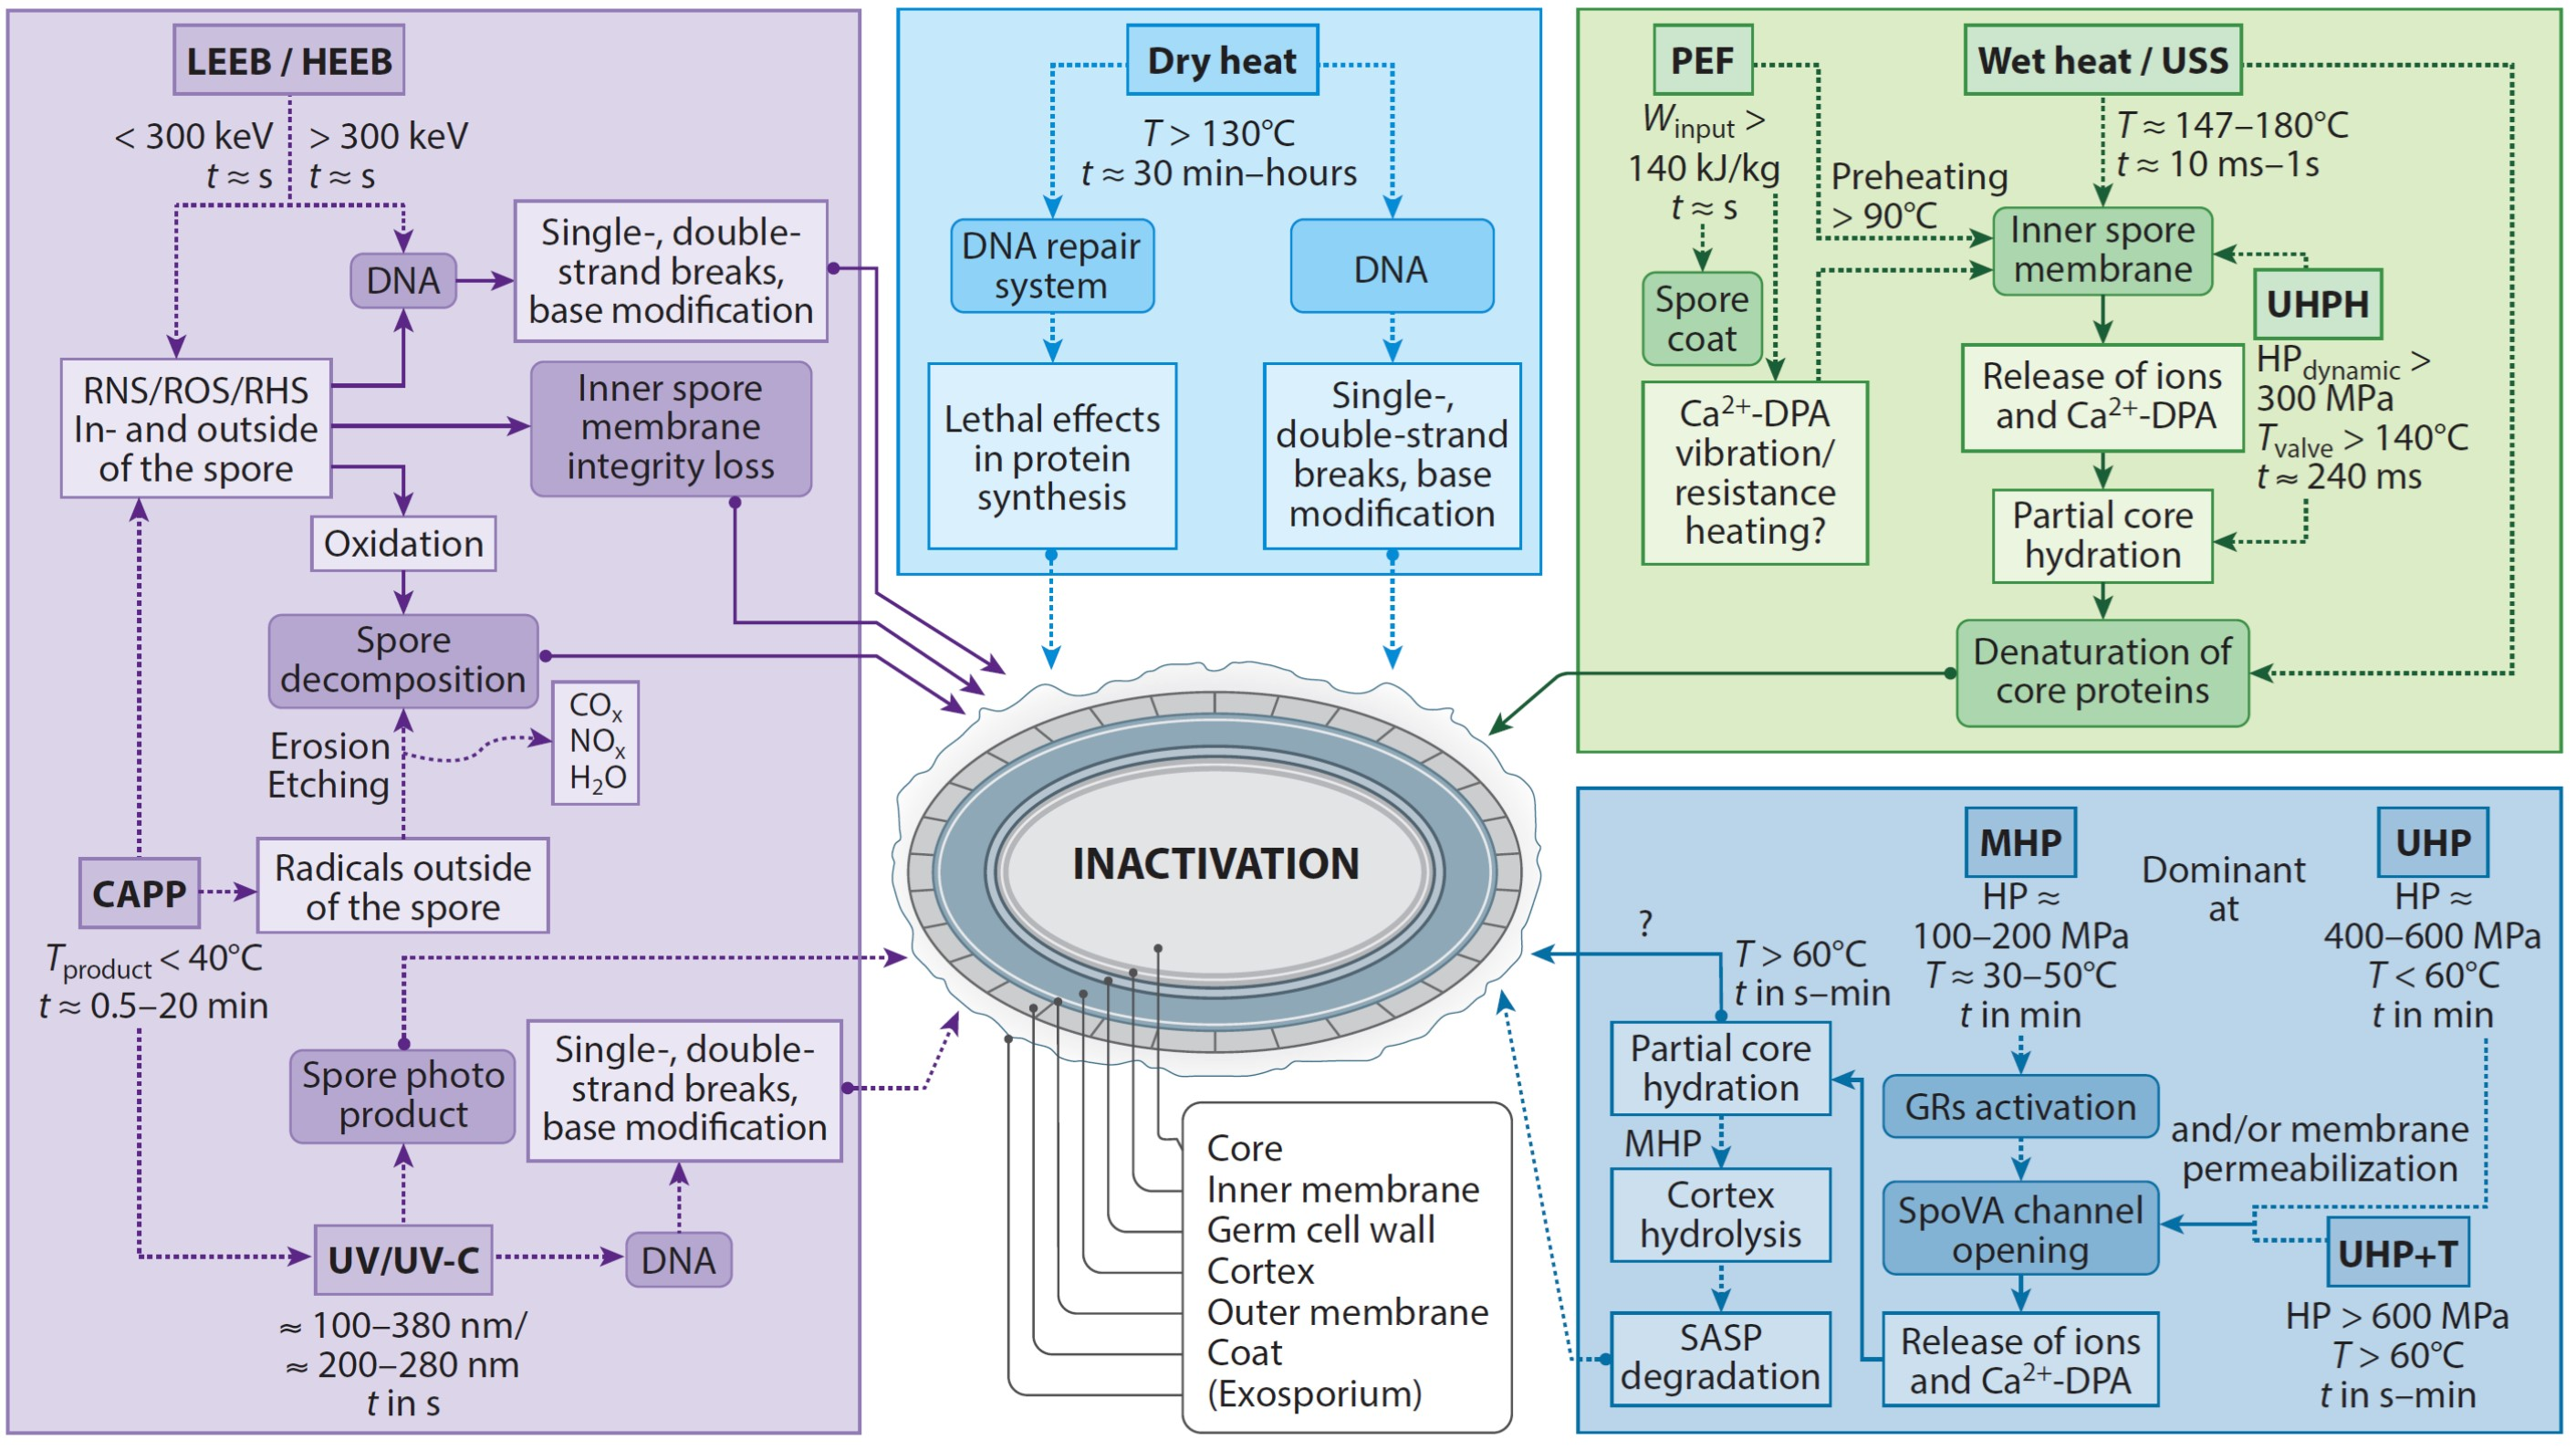 Bacterial Spore Mechanisms Sustainable Food Processing Eth Zurich Germination Diagram It Works From Schematic Overview Of